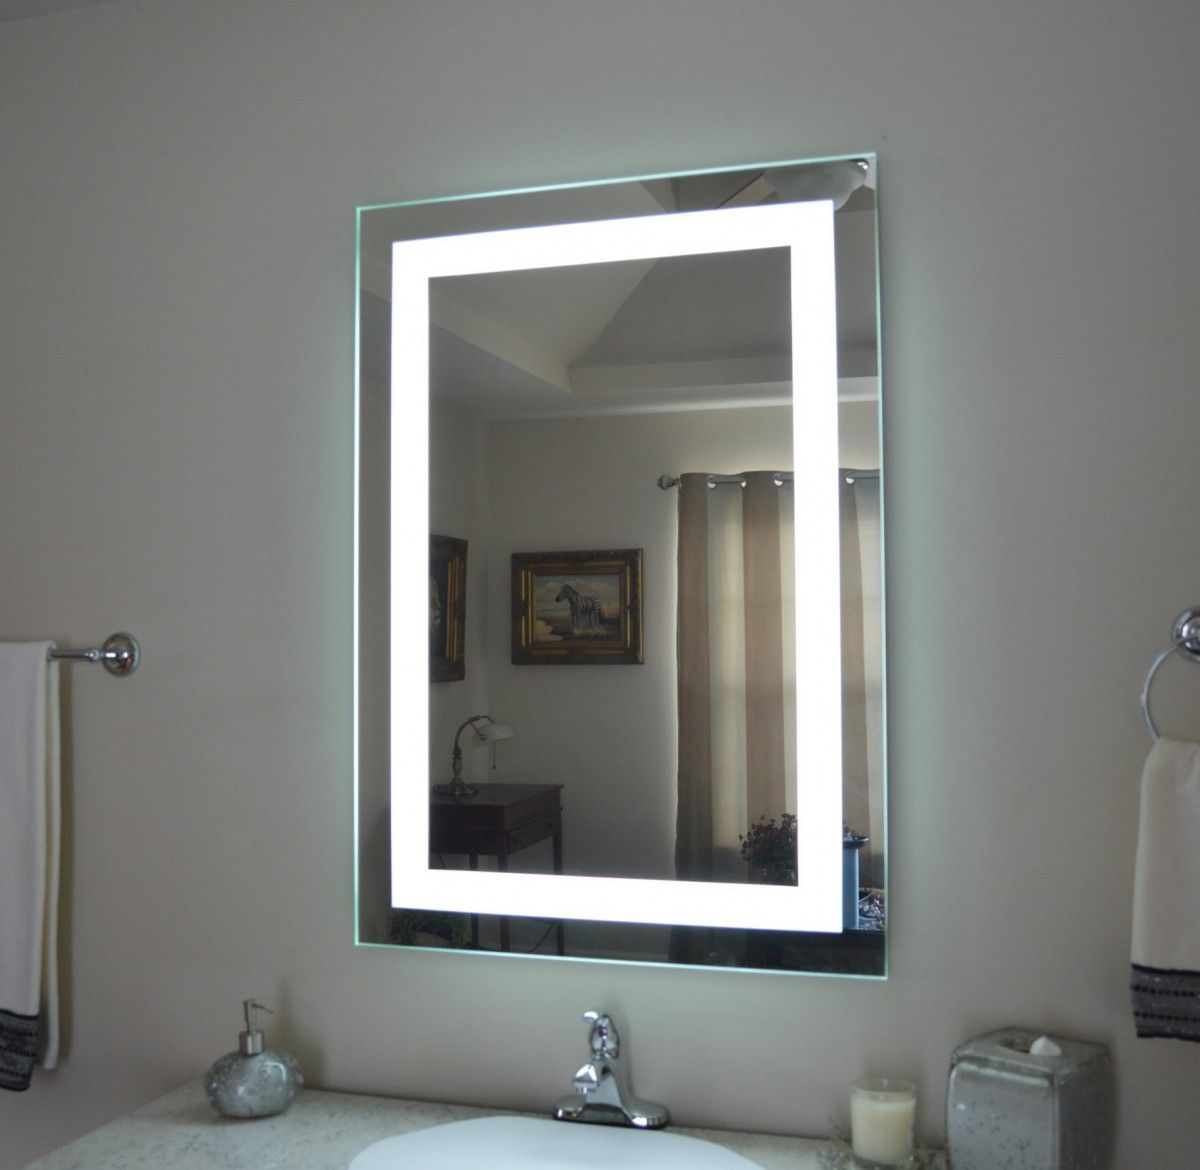 Bathroom mirror cabinet - Bathroom Mirror Cabinets Illuminated Lighted Medicine Cabinet Bathroom Mirror